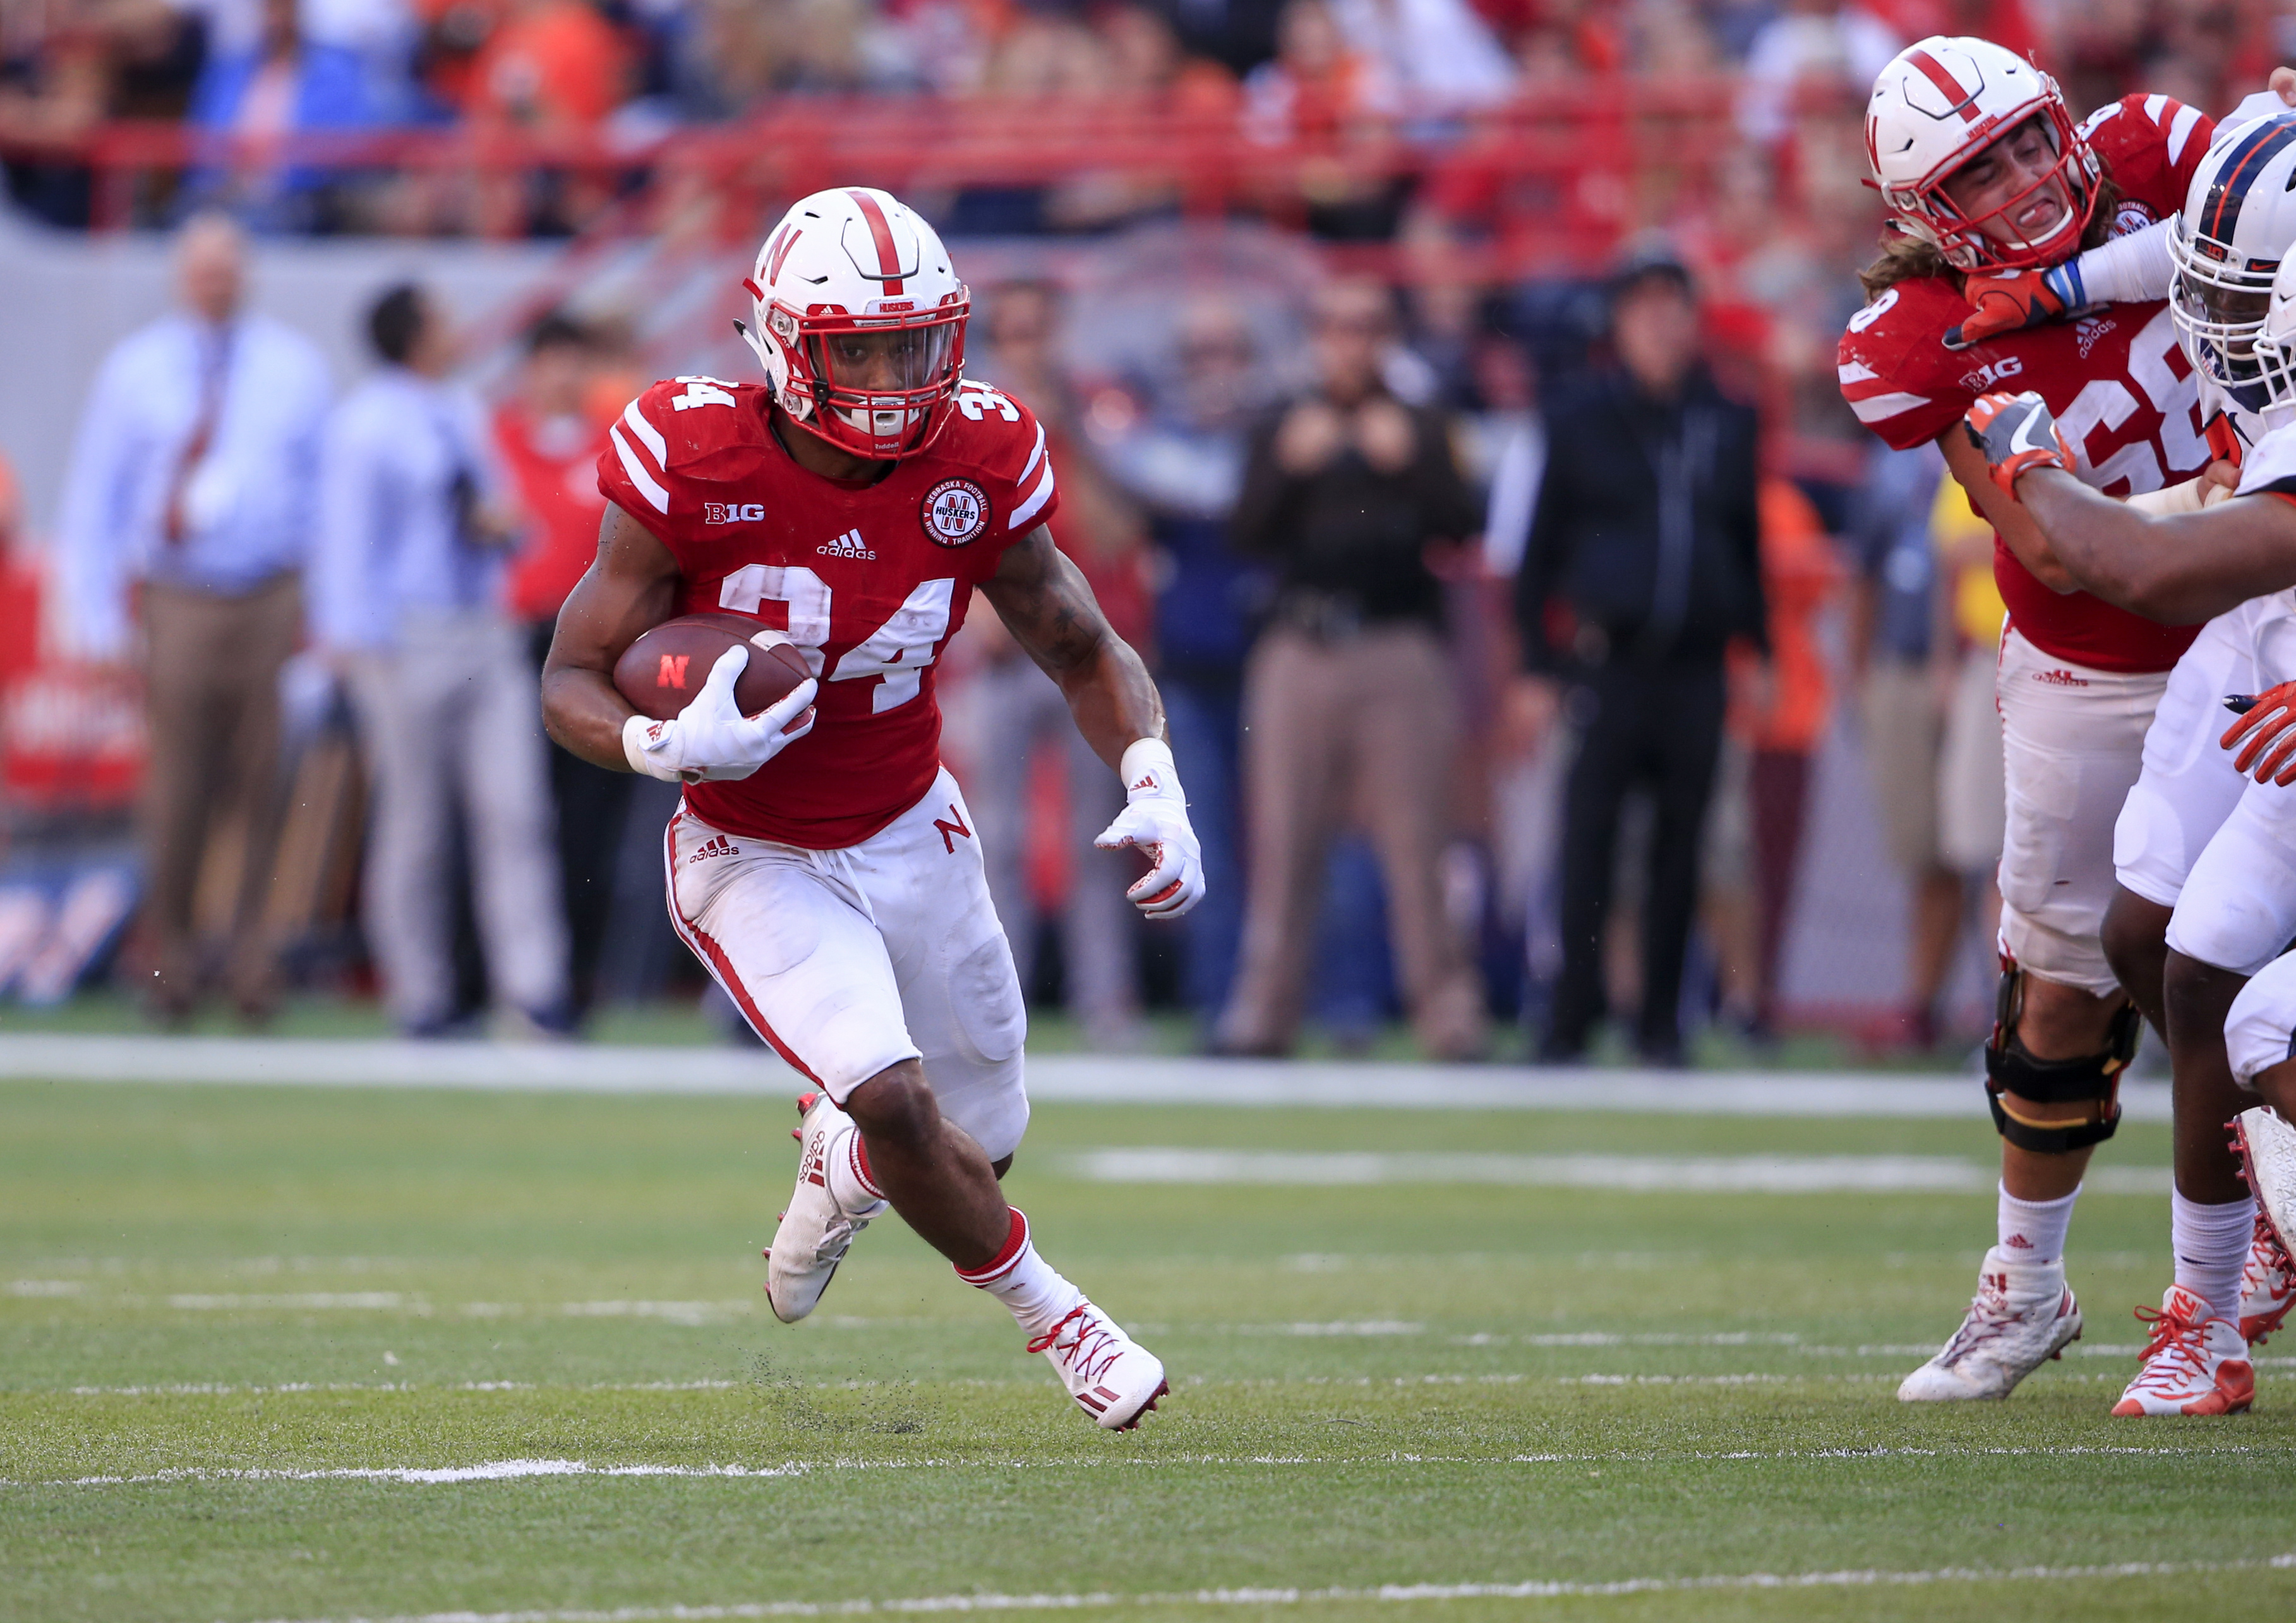 FILE- In this Oct. 1, 2016, file photo, Nebraska running back Terrell Newby (34) carries the ball during the second half of an NCAA college football game against Illinois in Lincoln, Neb. Newby had 22 carries for 102 yards and a touchdown in last week's w